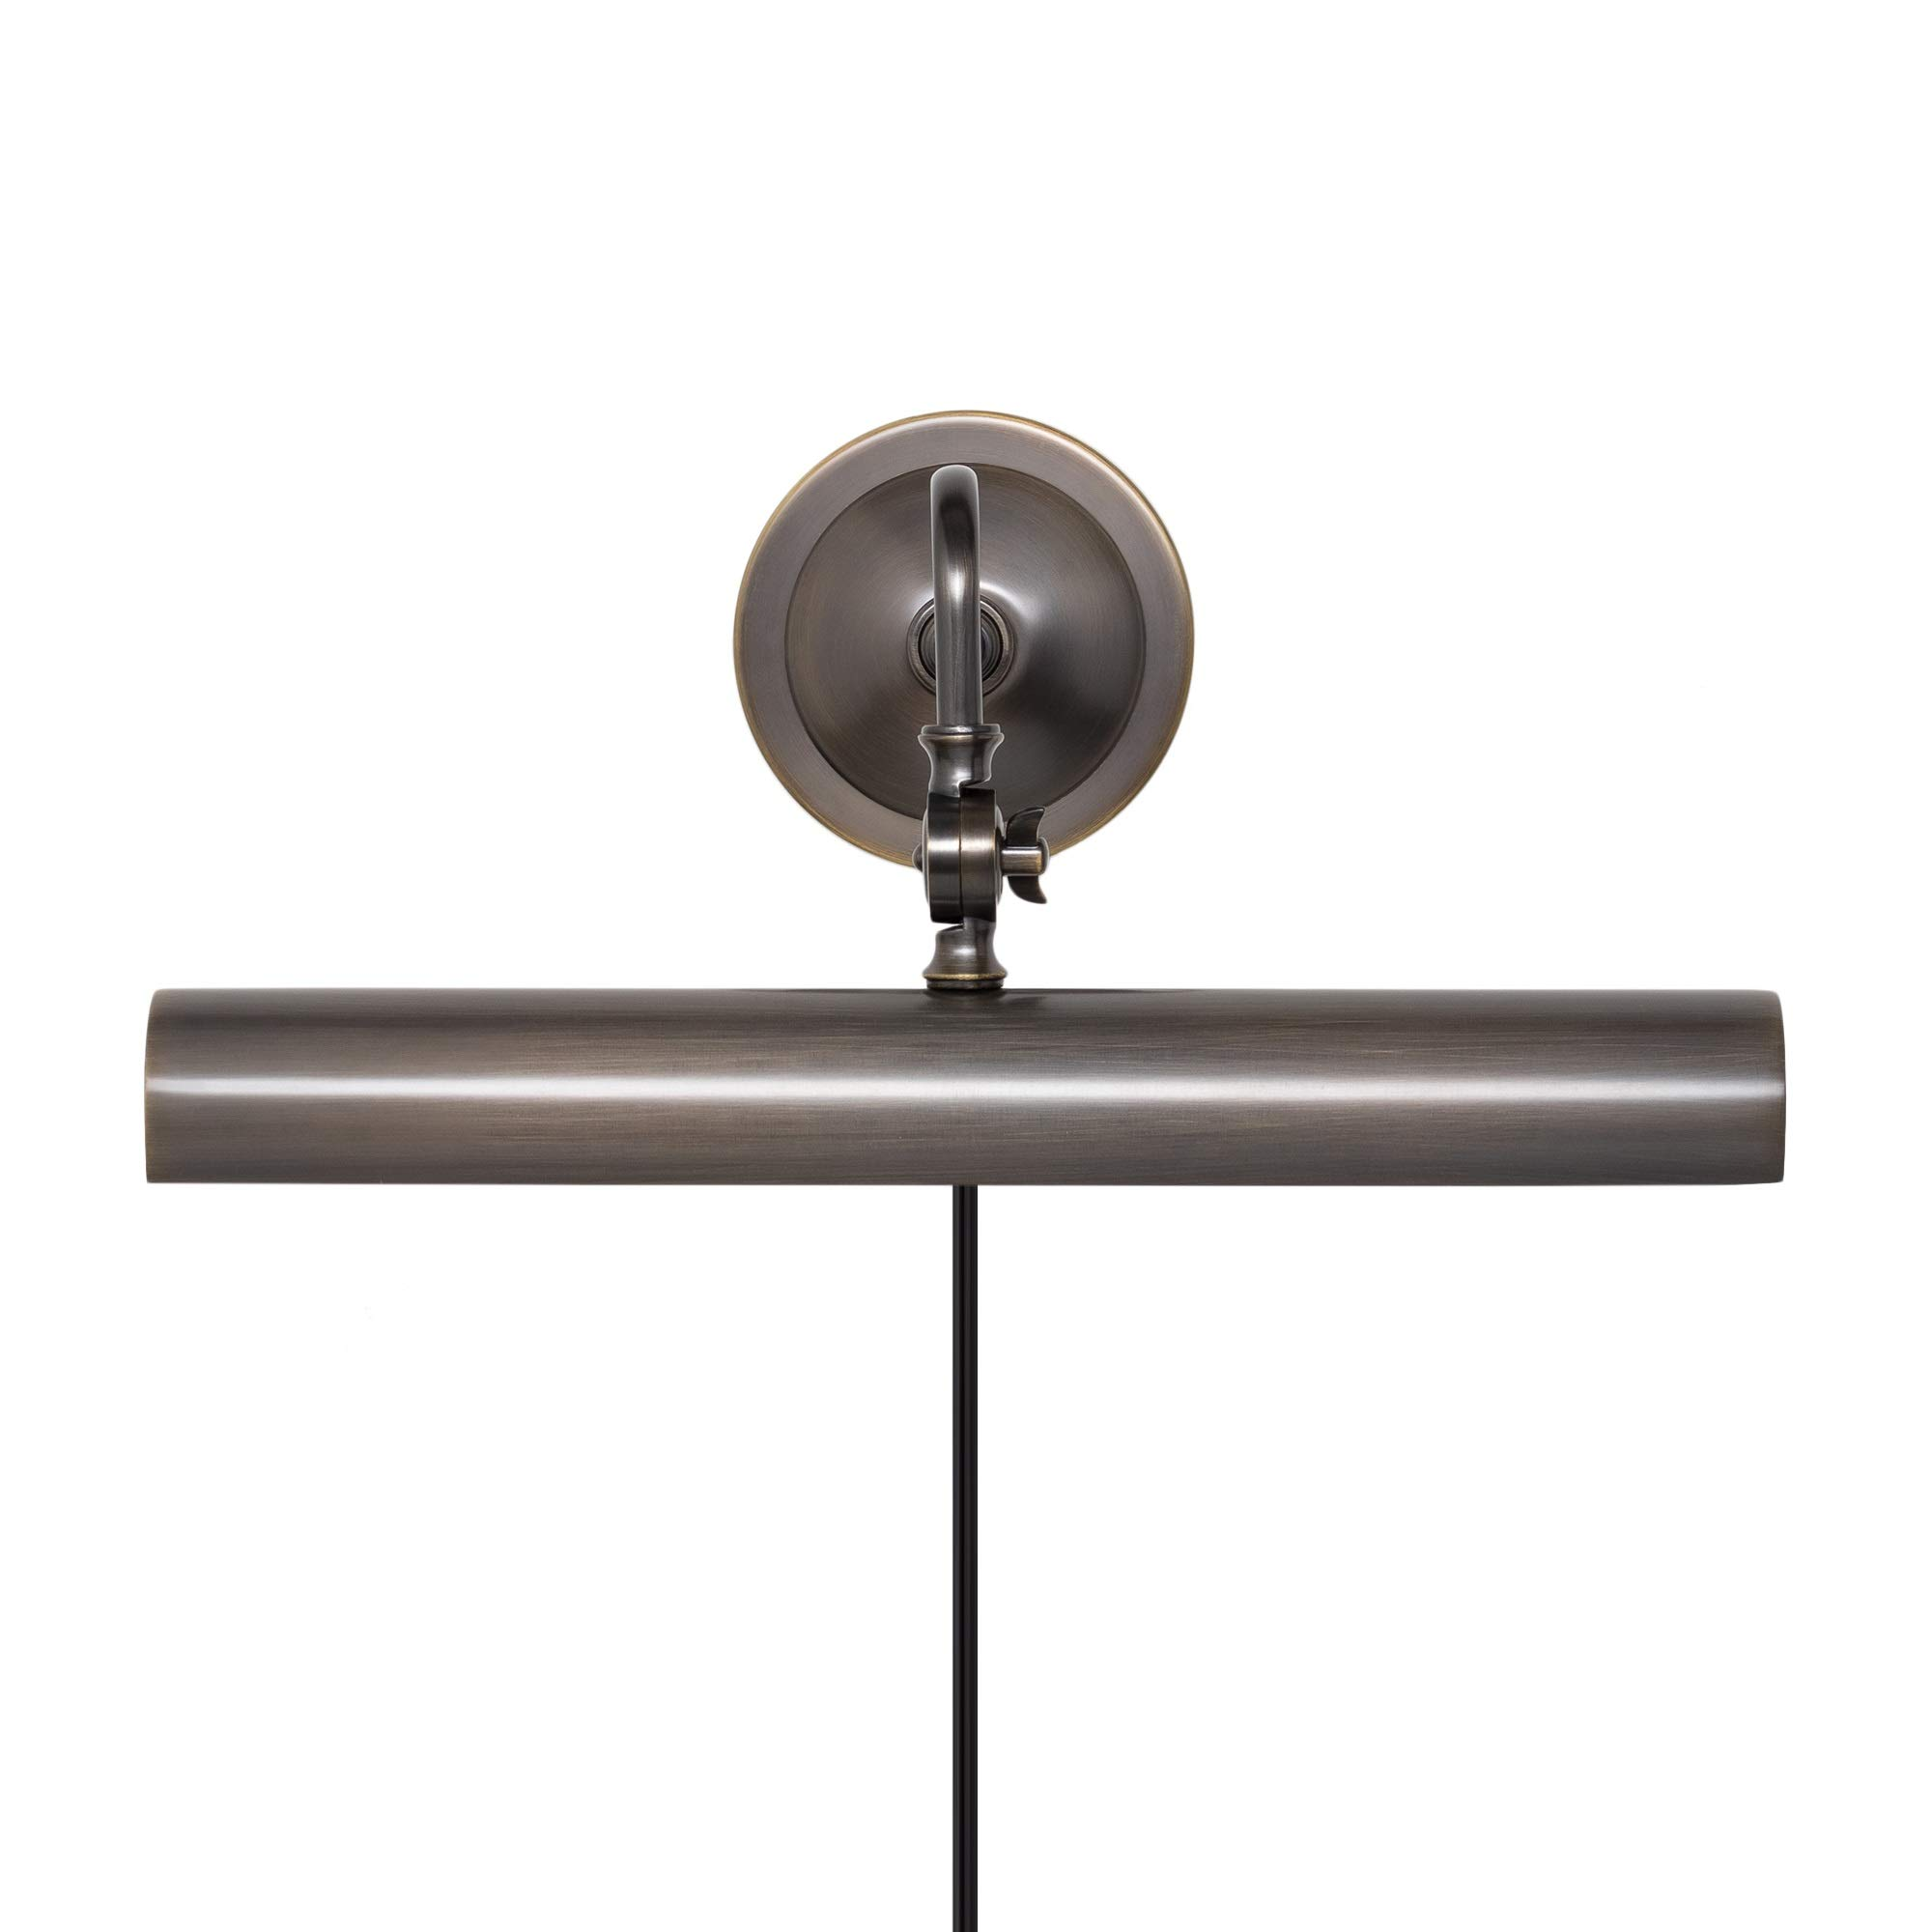 Upgradelights 16 Inch Adjustable Picture Lamp with Backplate (Oil Rubbed Bronze)